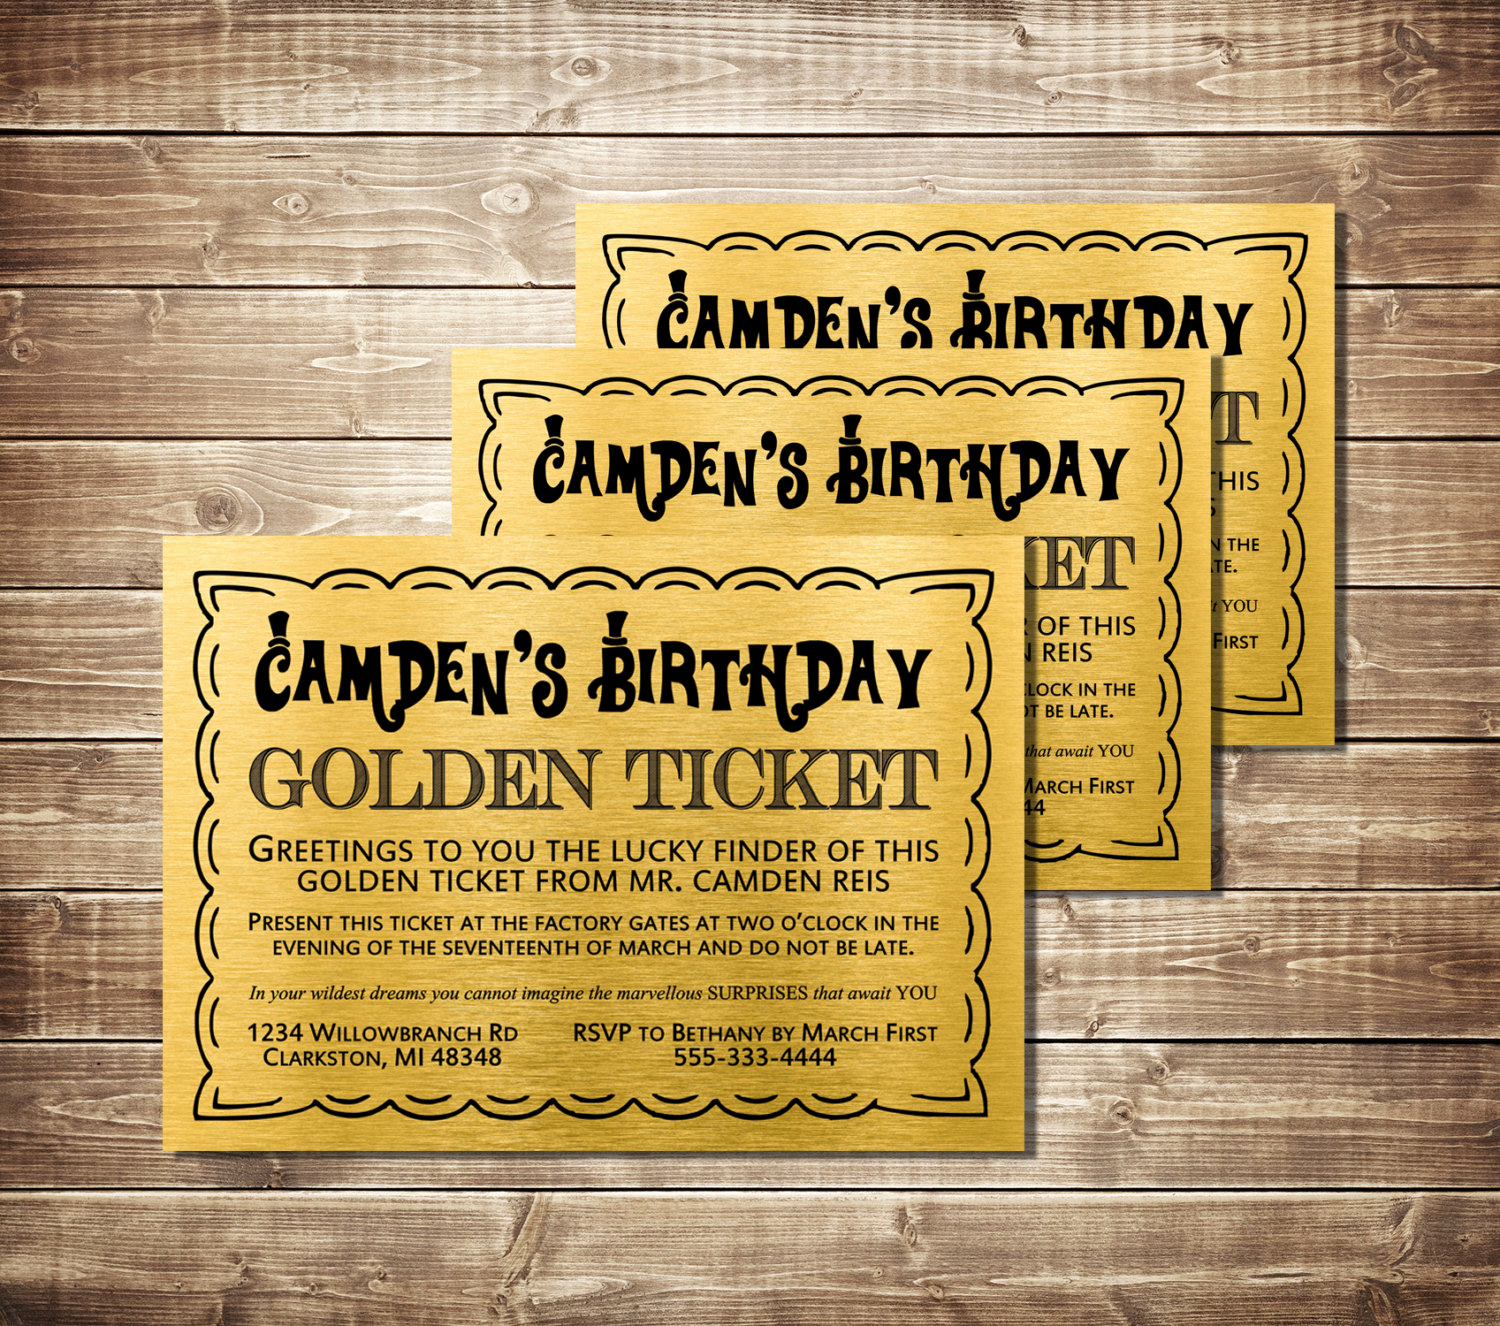 Willy Wonka Golden Ticket Invitation Fresh Golden Ticket Birthday Invitation Golden Ticket Invite Willy